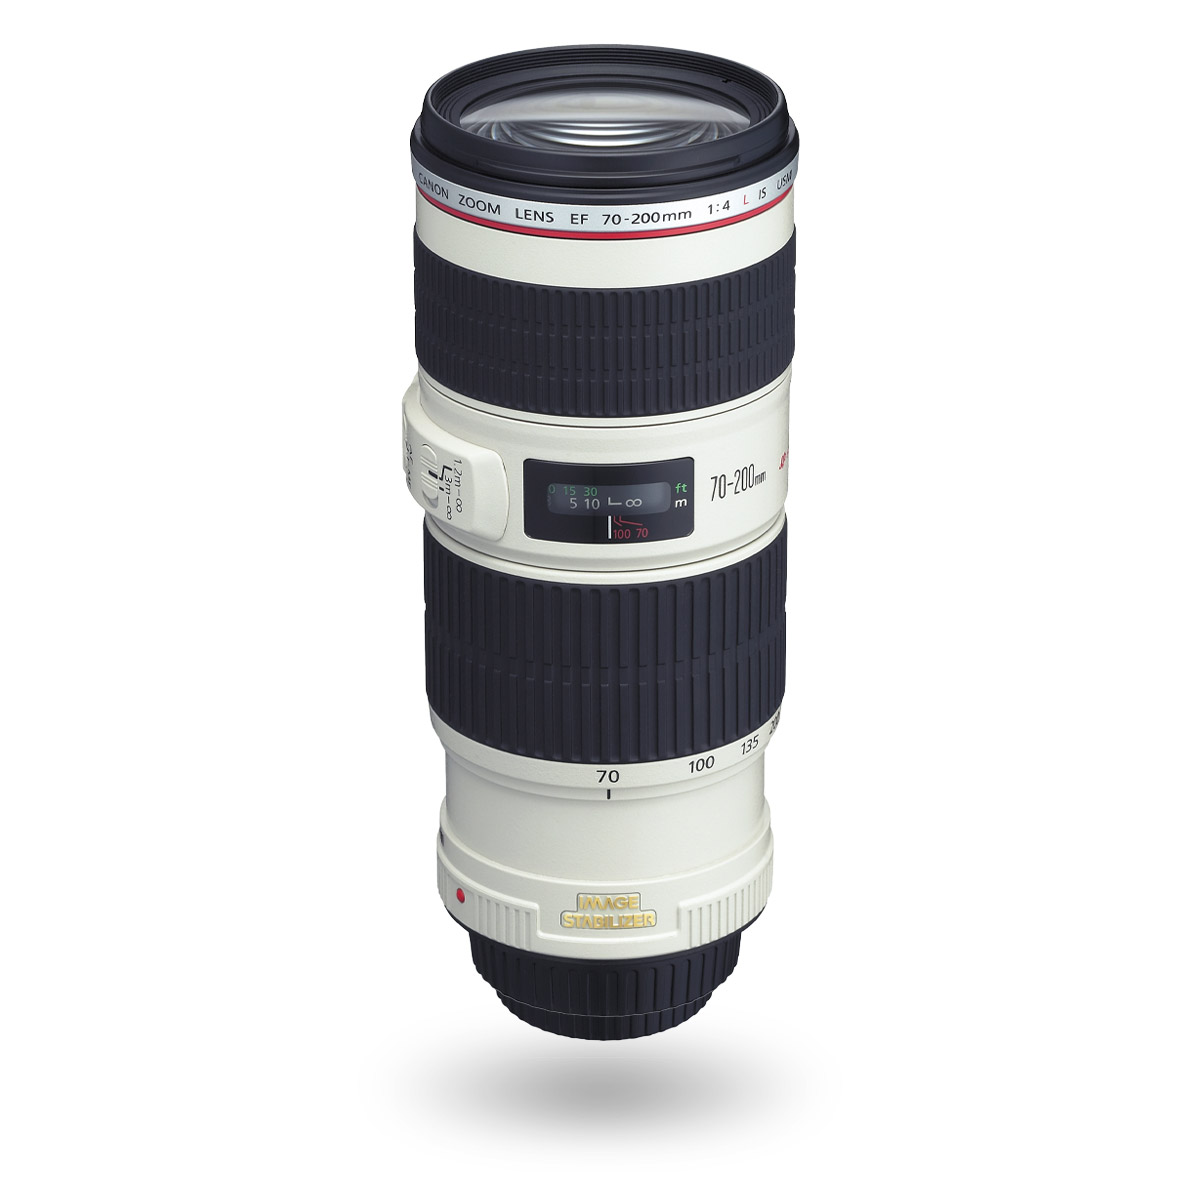 EF 70-200mm f/4L IS USM lens